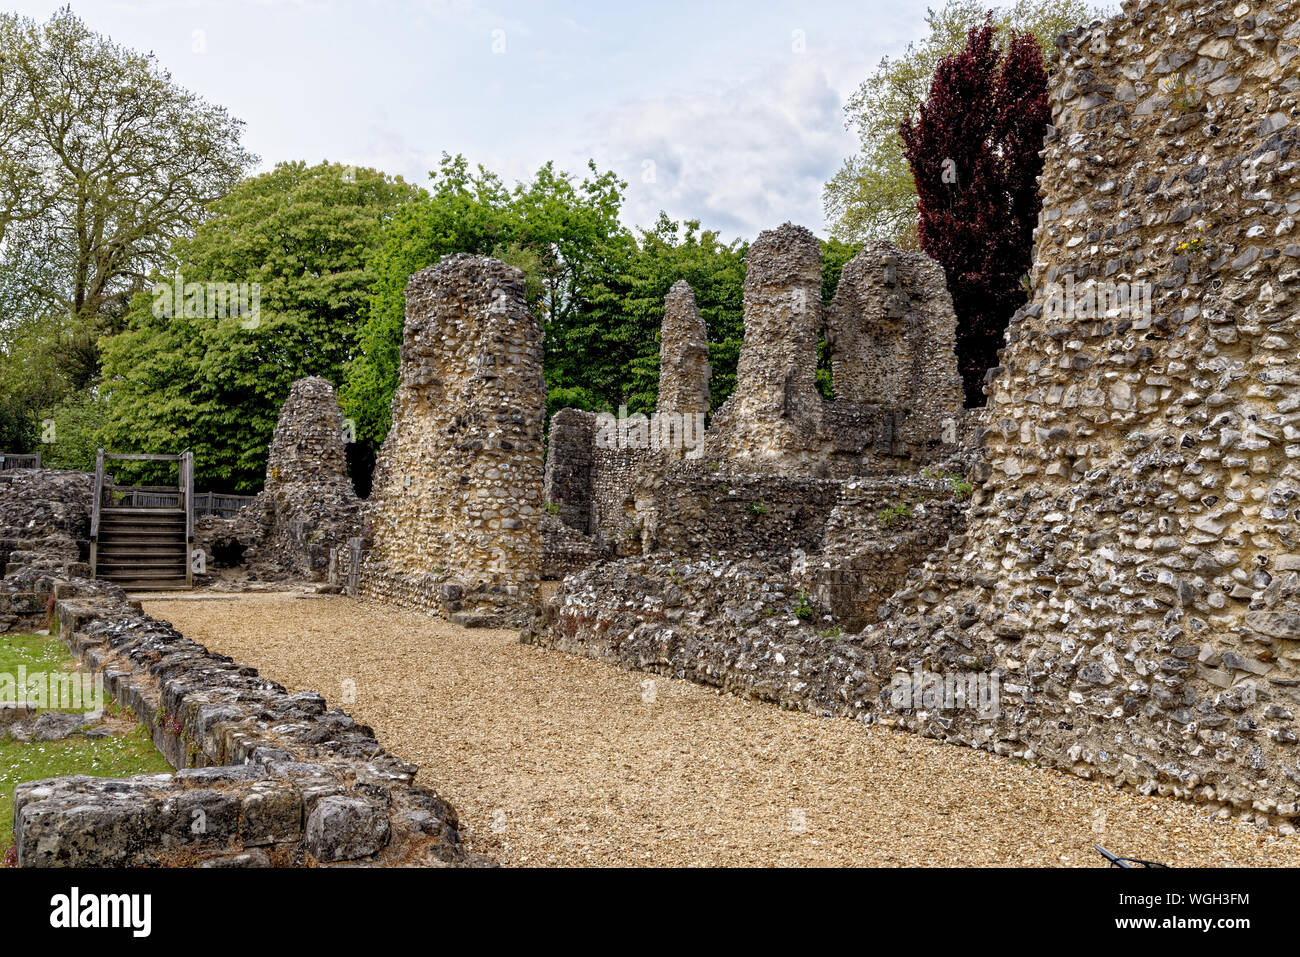 Wolvesey Castle (Old Bishop's Palace) - Monumental remains of a 12th-century palace, once the residence of the bishops of Winchester City - England - Stock Photo